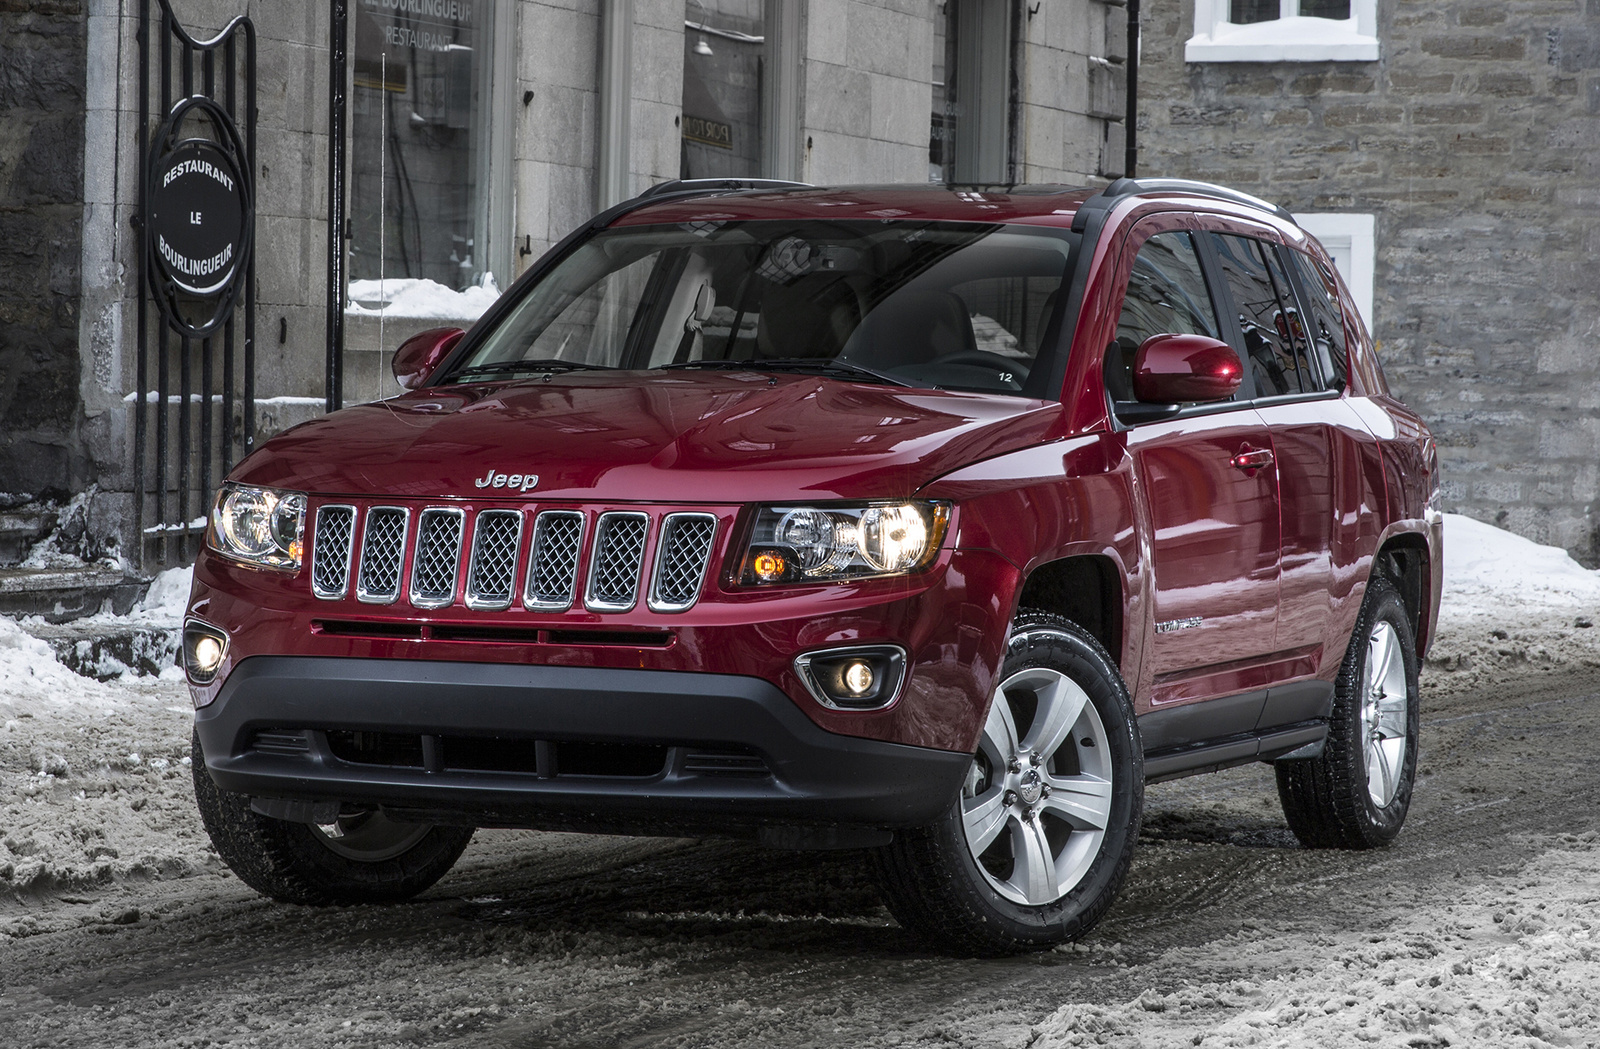 2017 Jeep Compass - Overview - CarGurus